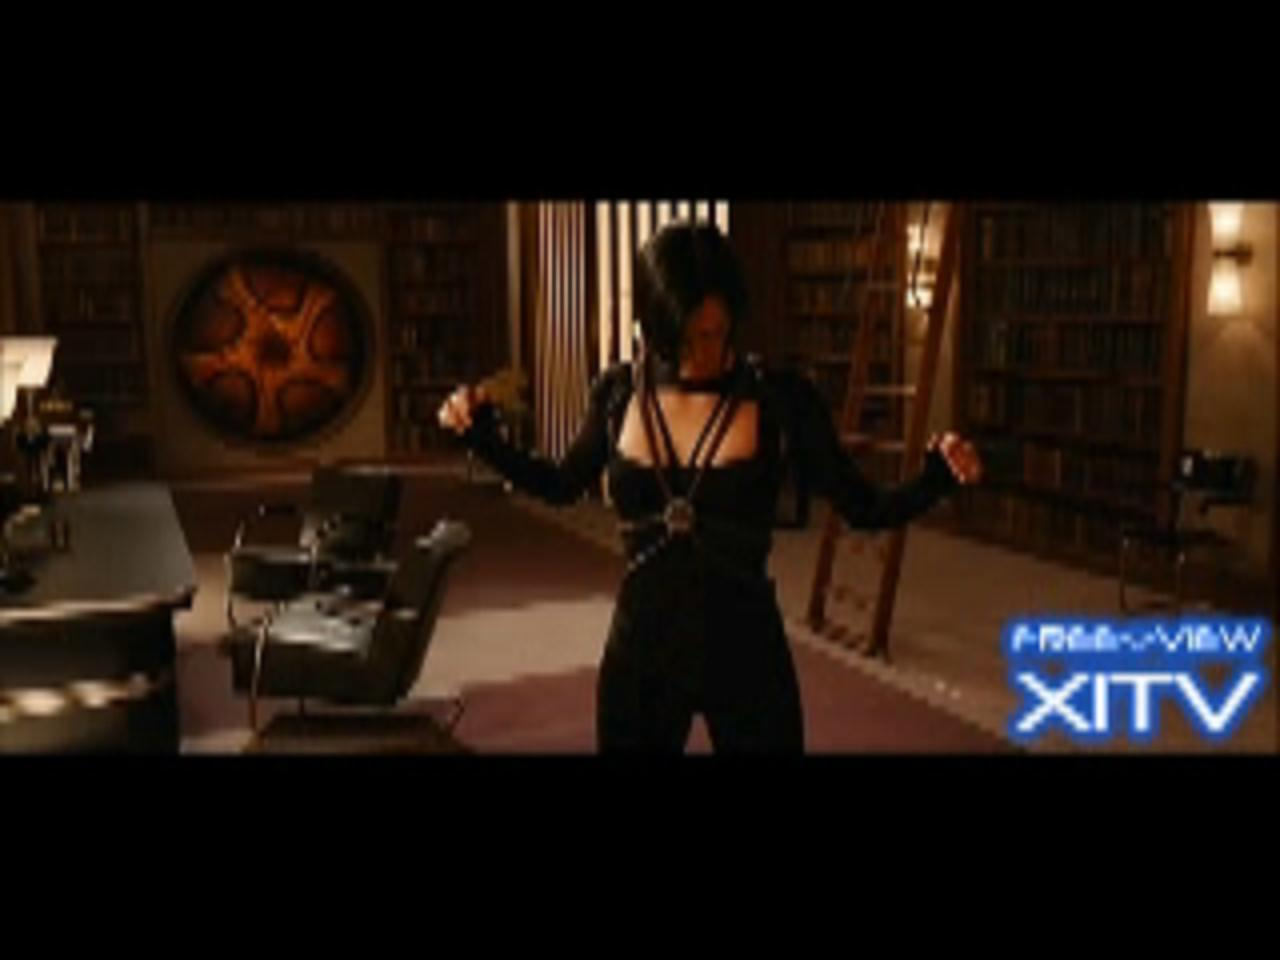 Watch Now! XITV FREE <> VIEW &quot;AEON FLUX!&quot; Starring Charlize Theron!